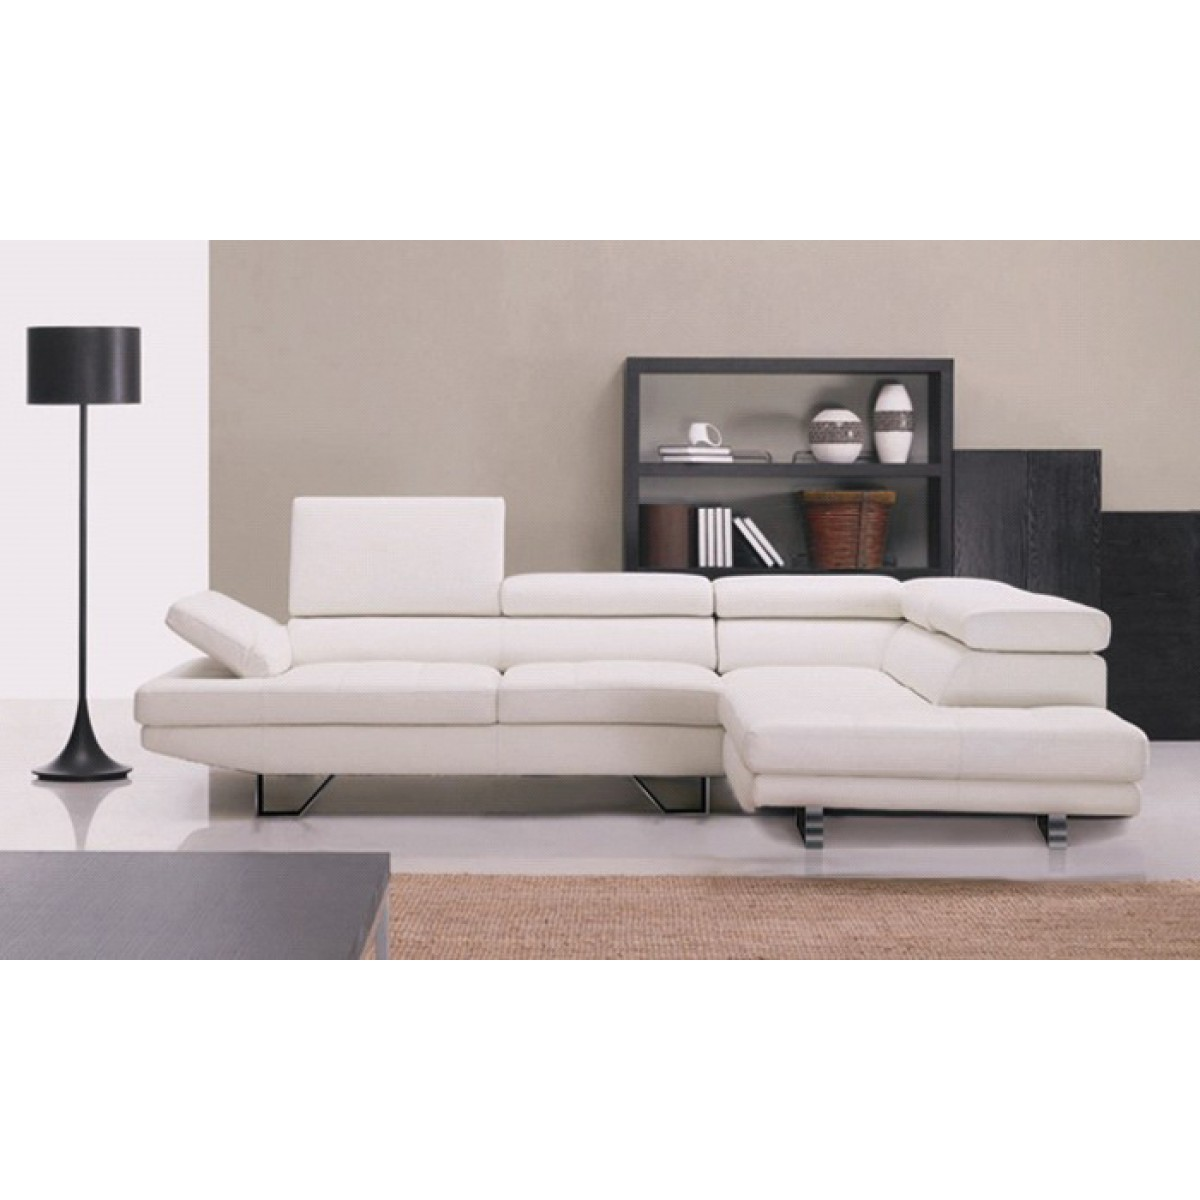 achat mousse pour canape home design architecture